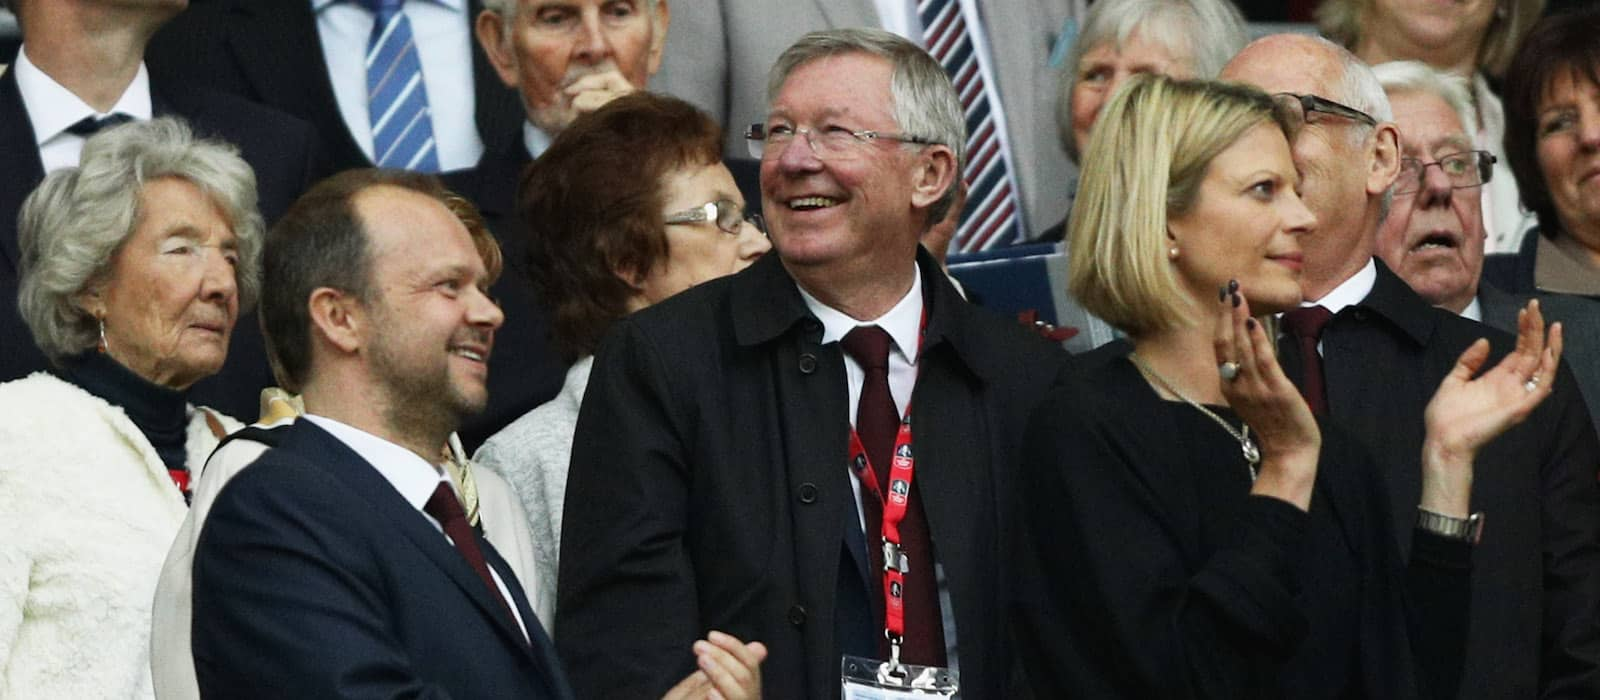 New Sir Alex Ferguson banner put up at Old Trafford in support of legendary boss